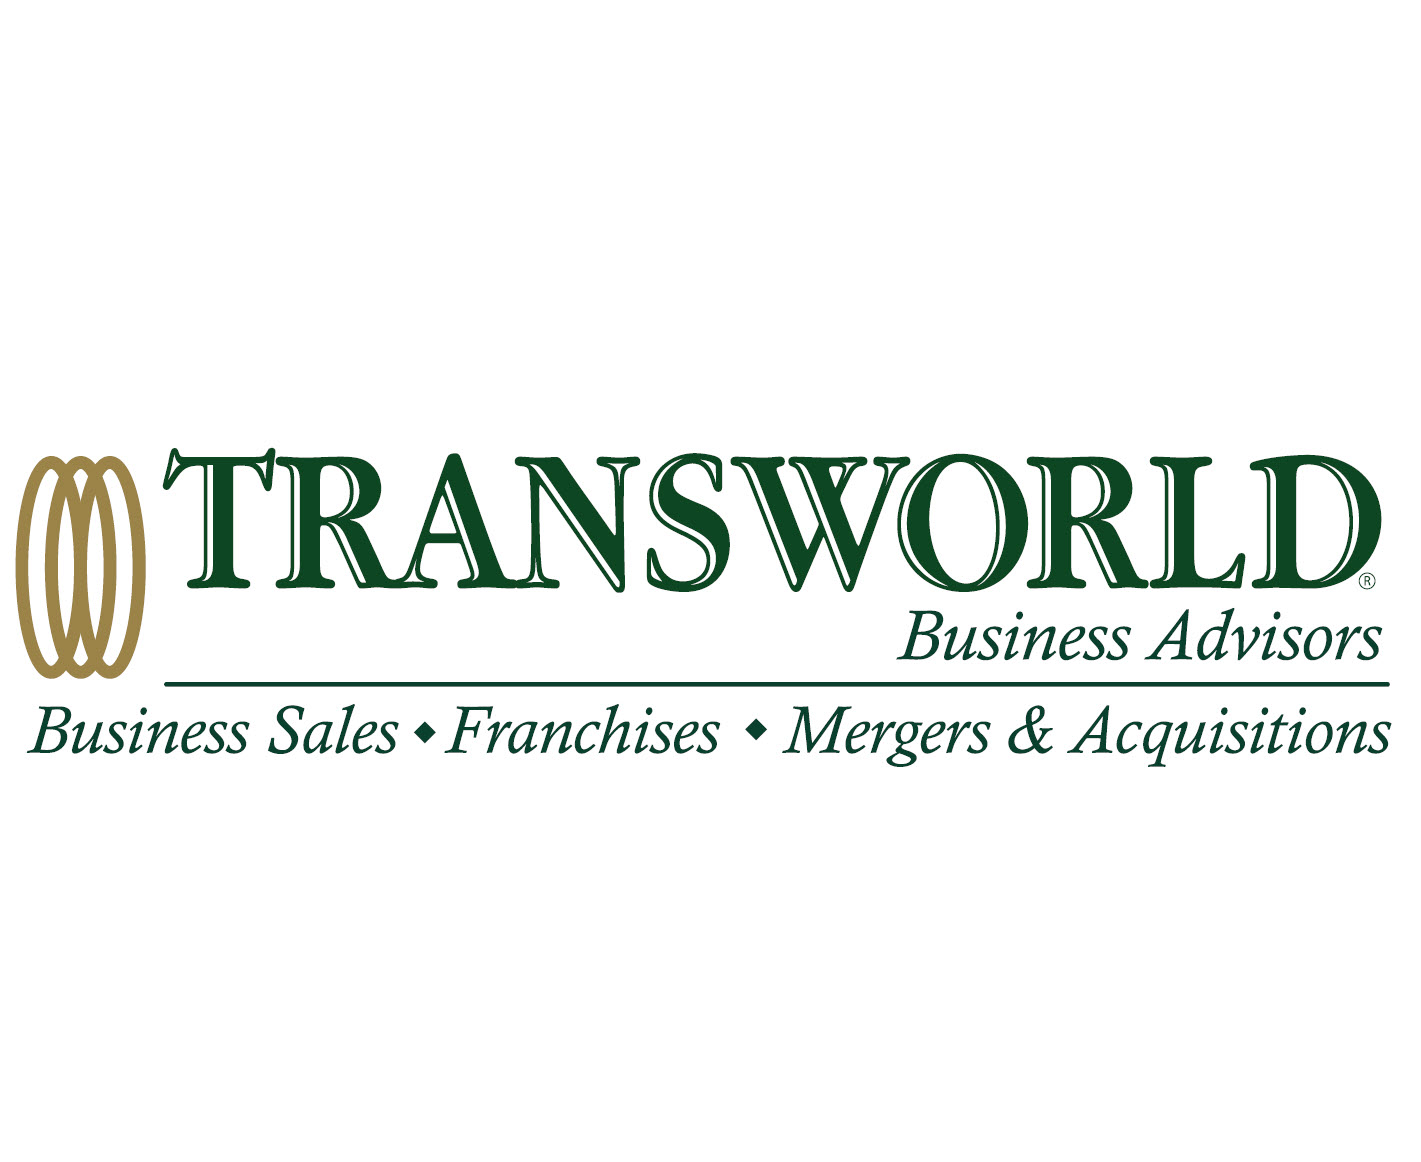 Transworld Business Advisors Brisbane CBD Logo